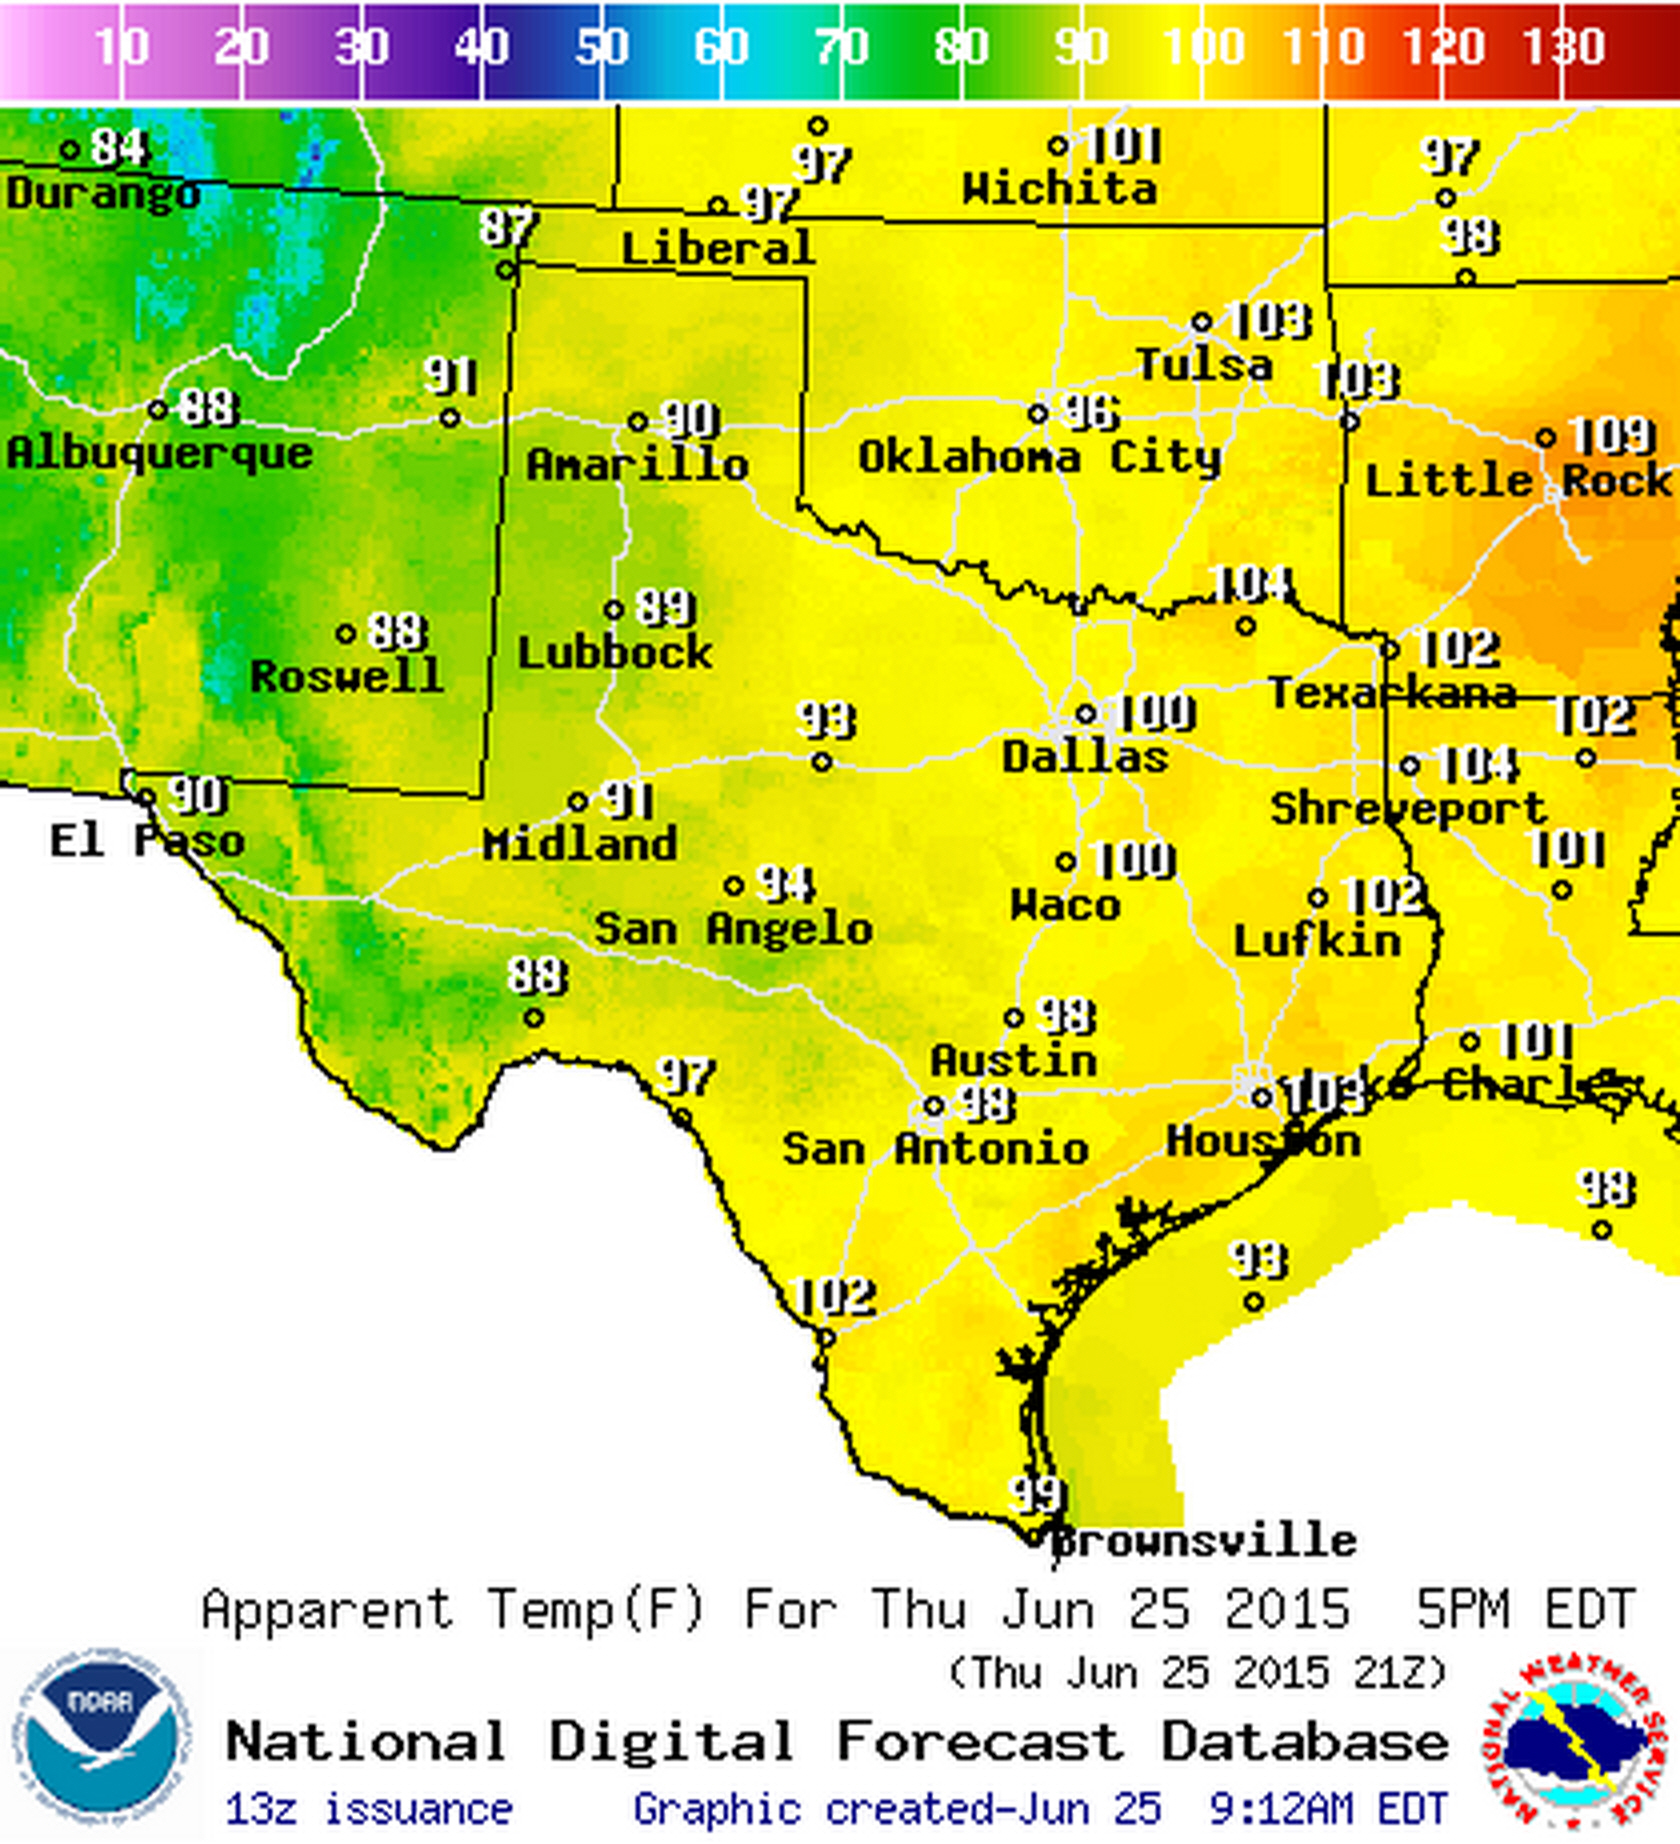 Heat index values expected at 5 PM this afternoon